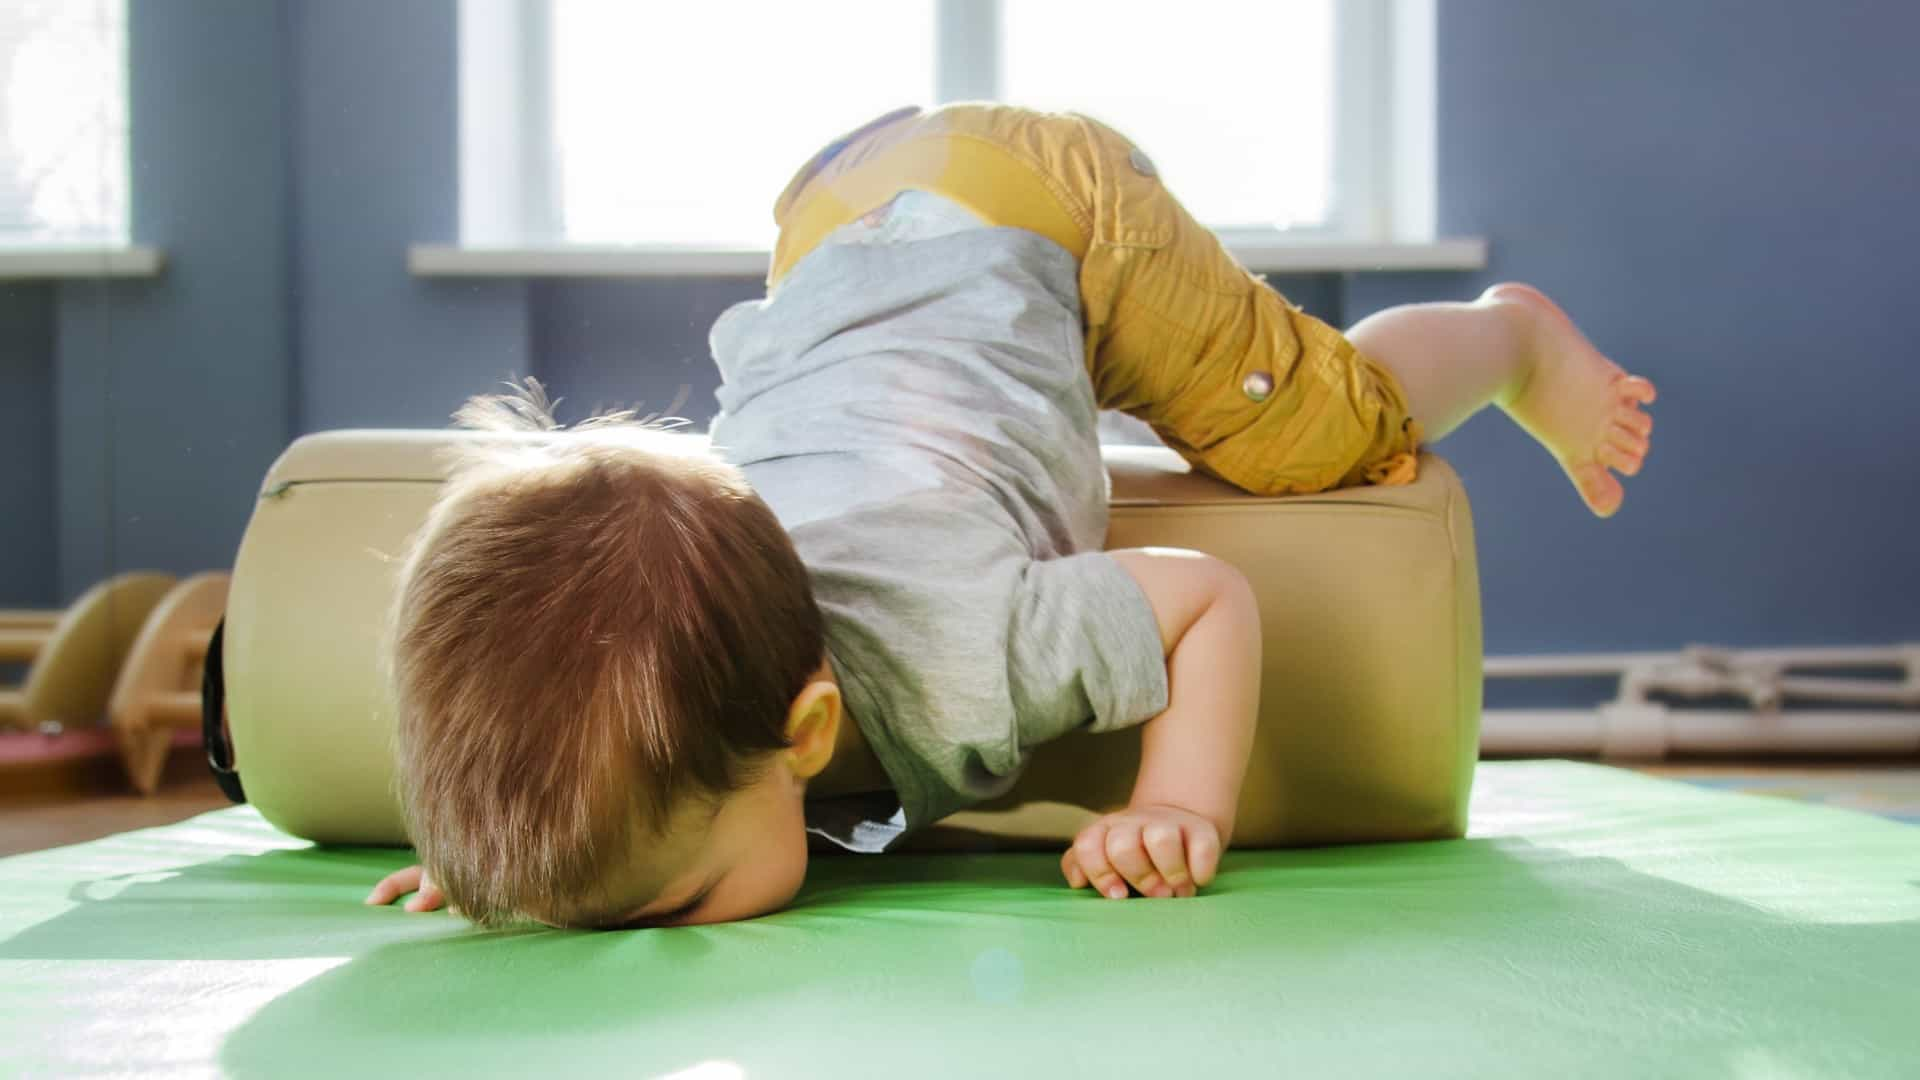 Toddler in nursery nosediving over cushion onto floor